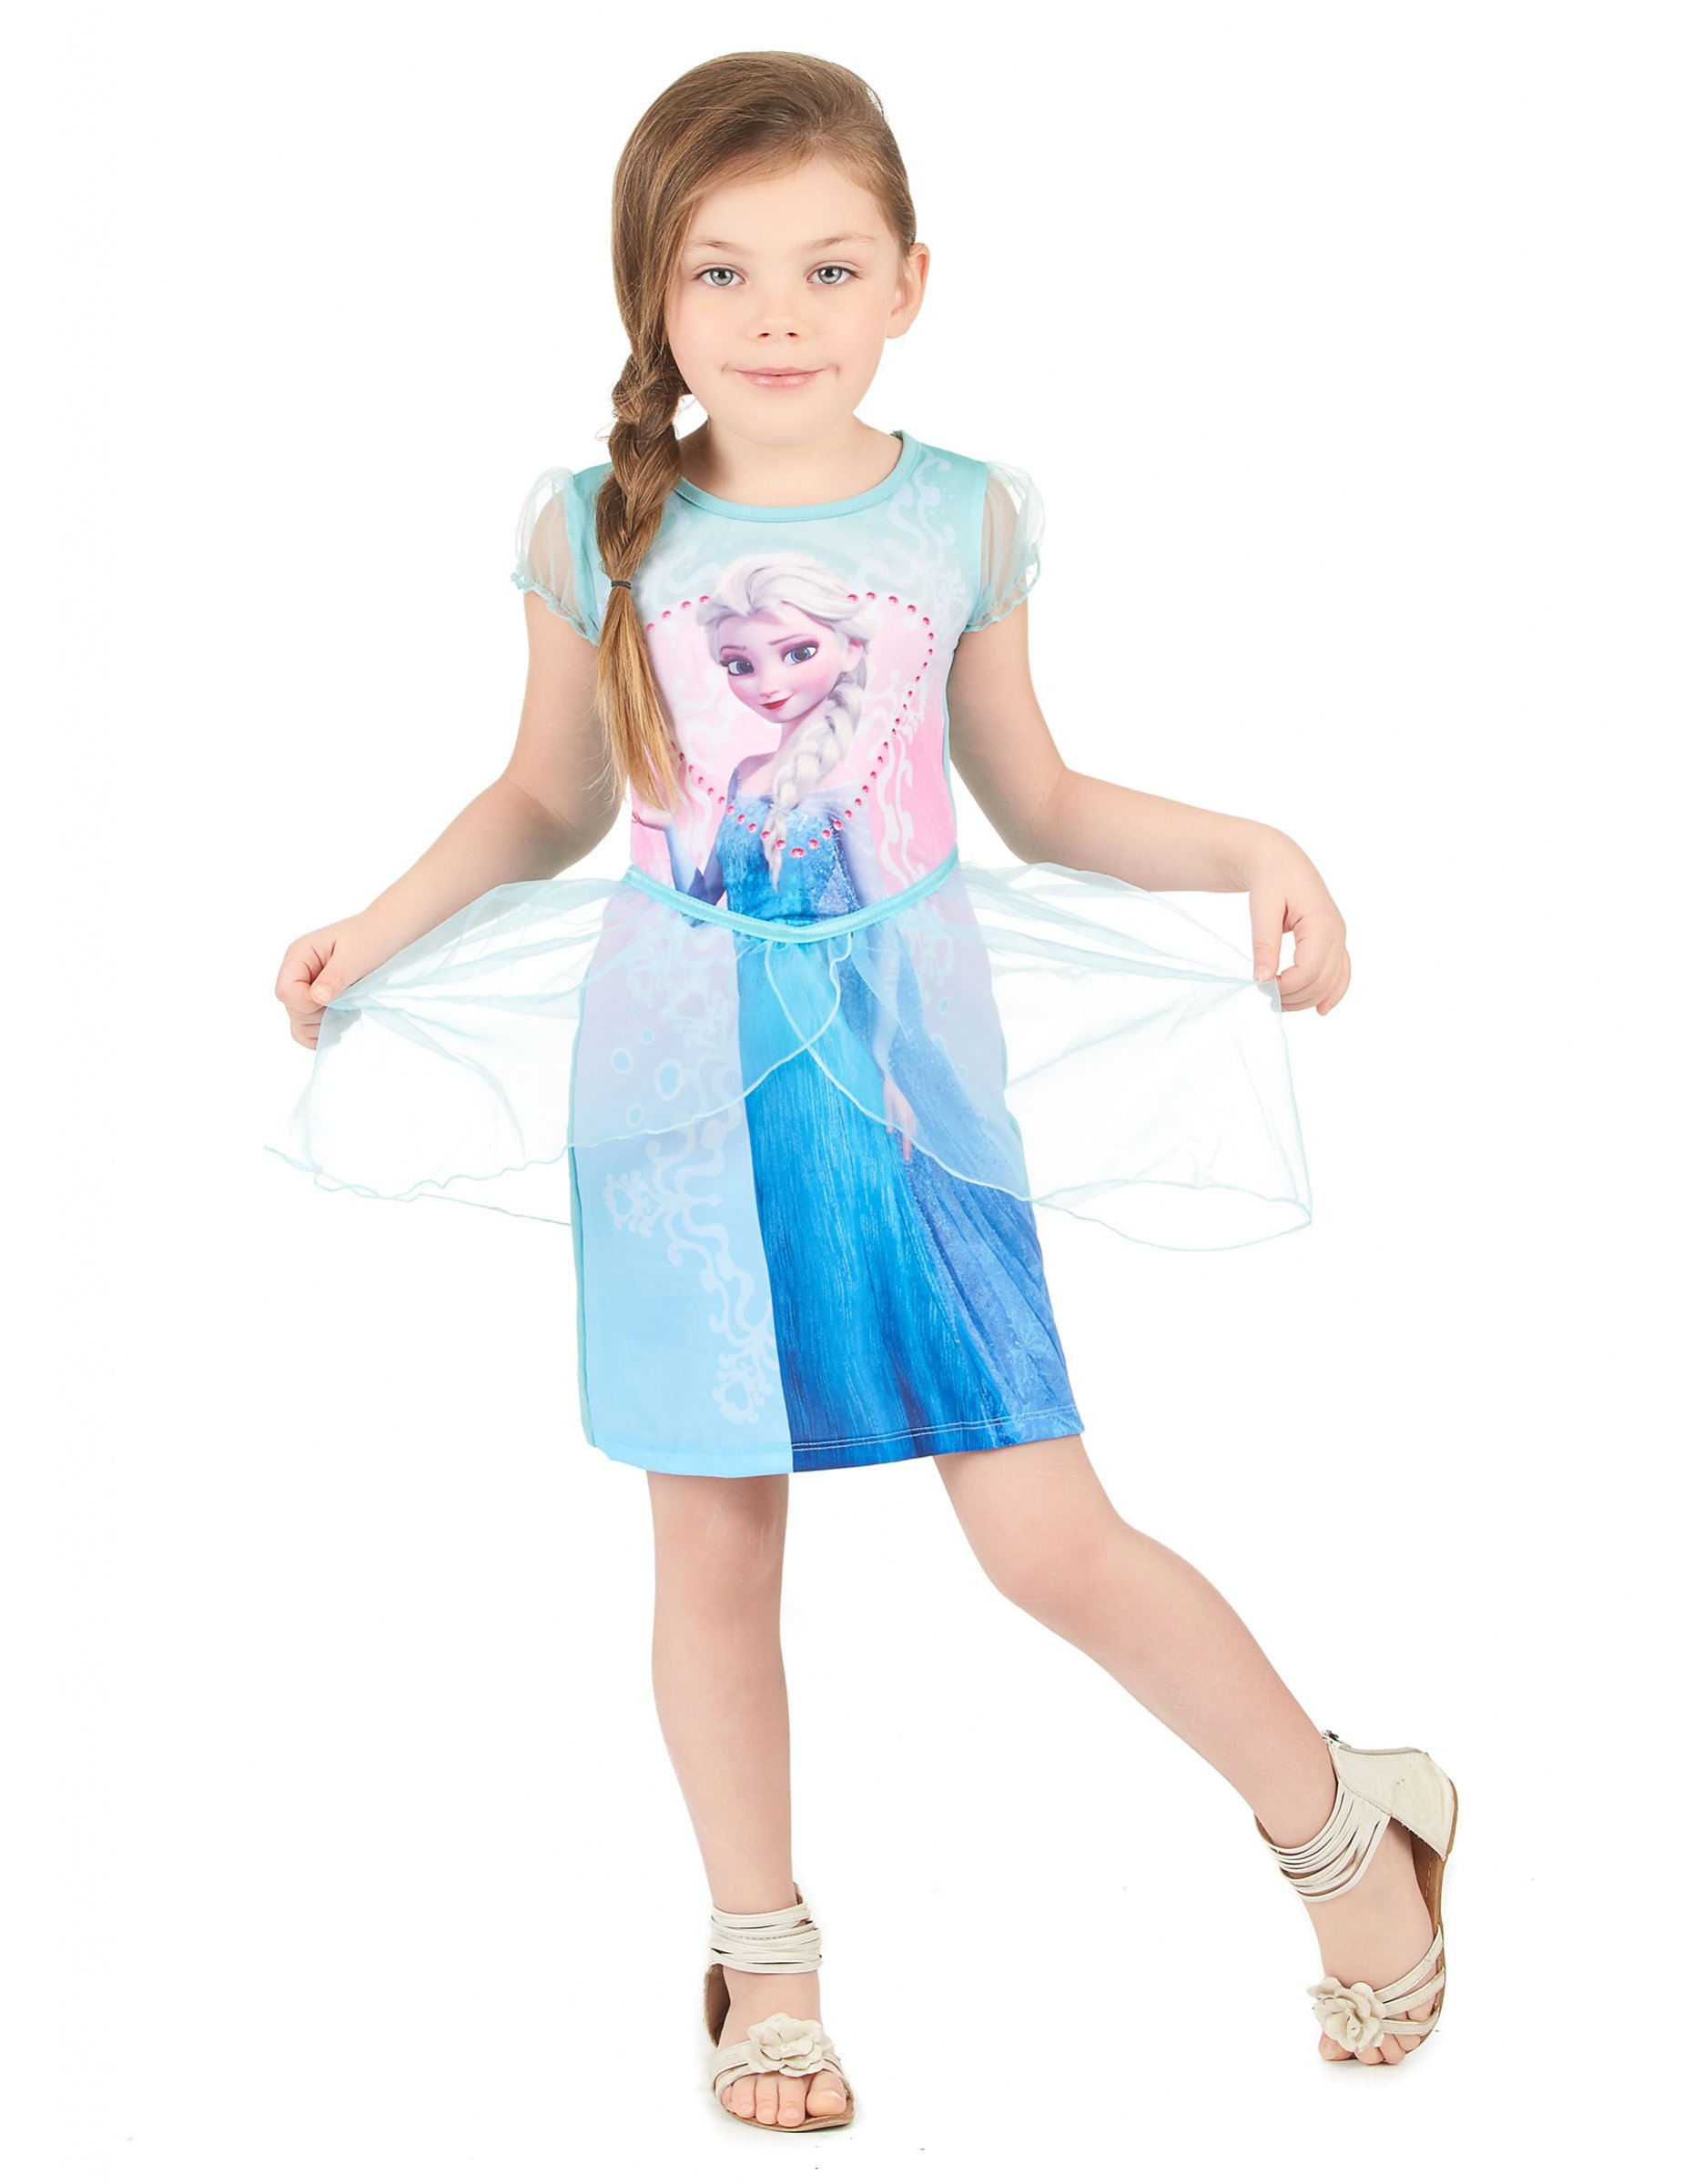 La Des Robe Reine Elsa Fille Neiges™ gf7vb6Yy